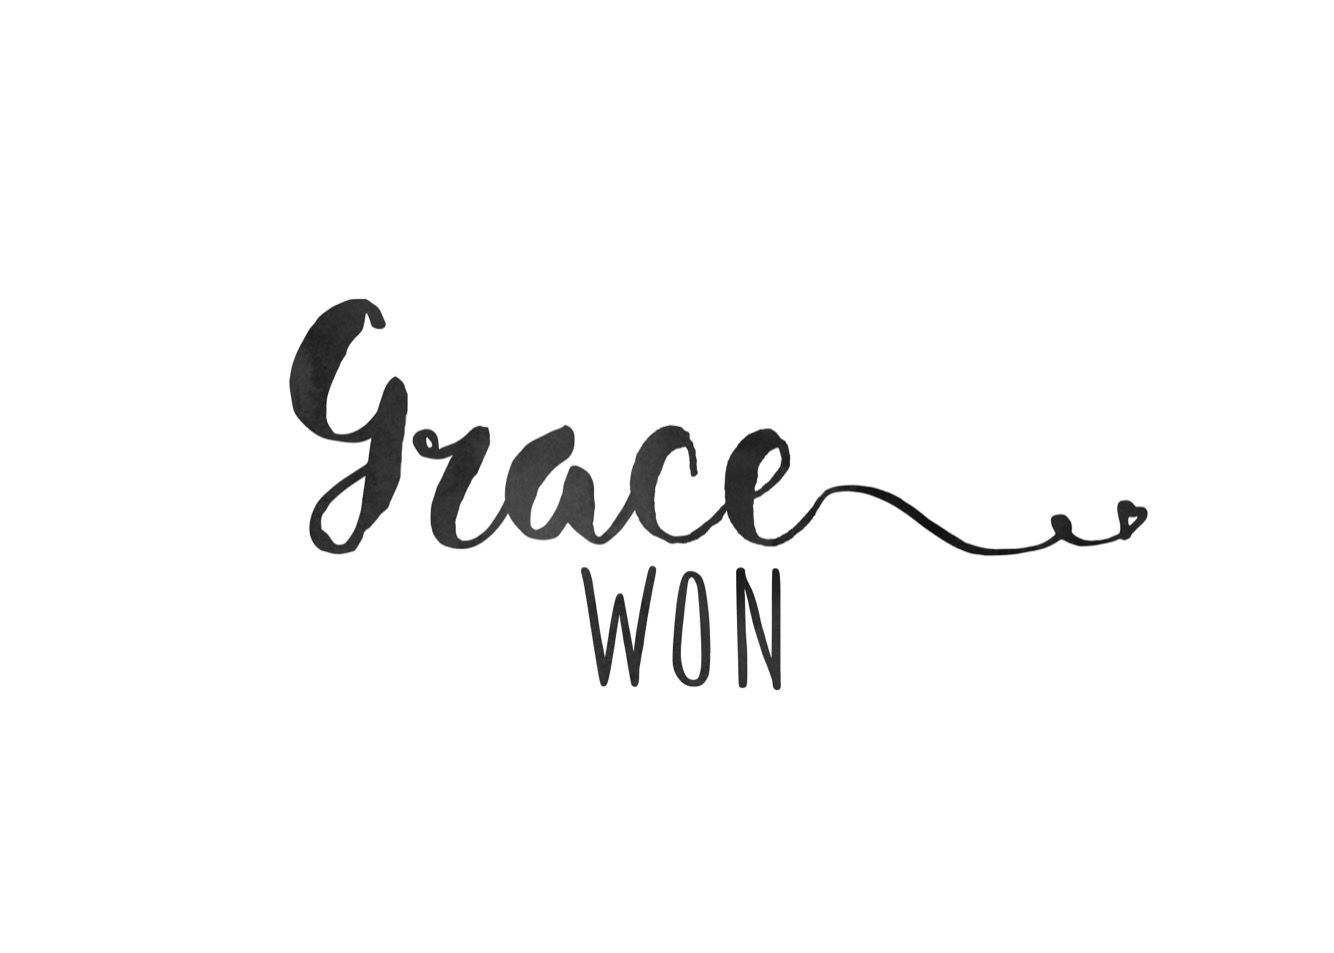 To me grace is the relief, strength, blessings and newness